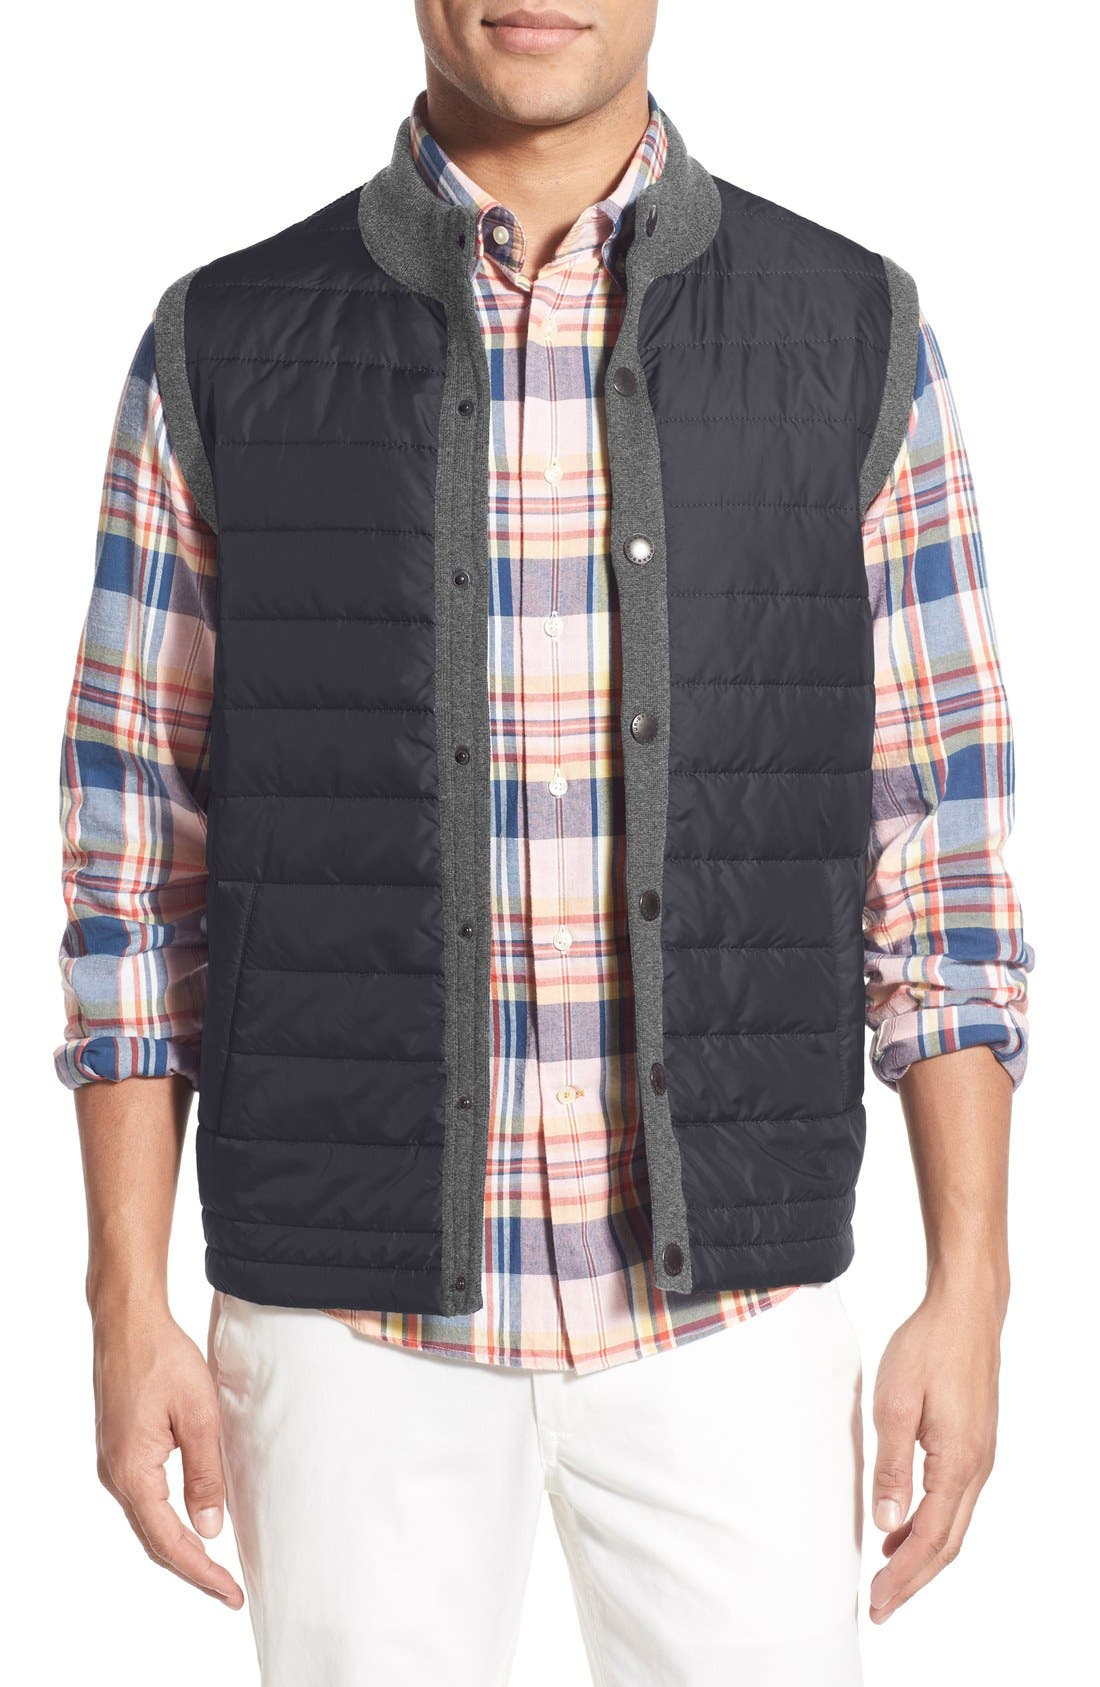 BARBOUR 'Essential' Tailored Fit Mixed Media Vest, Main, color, MID GREY